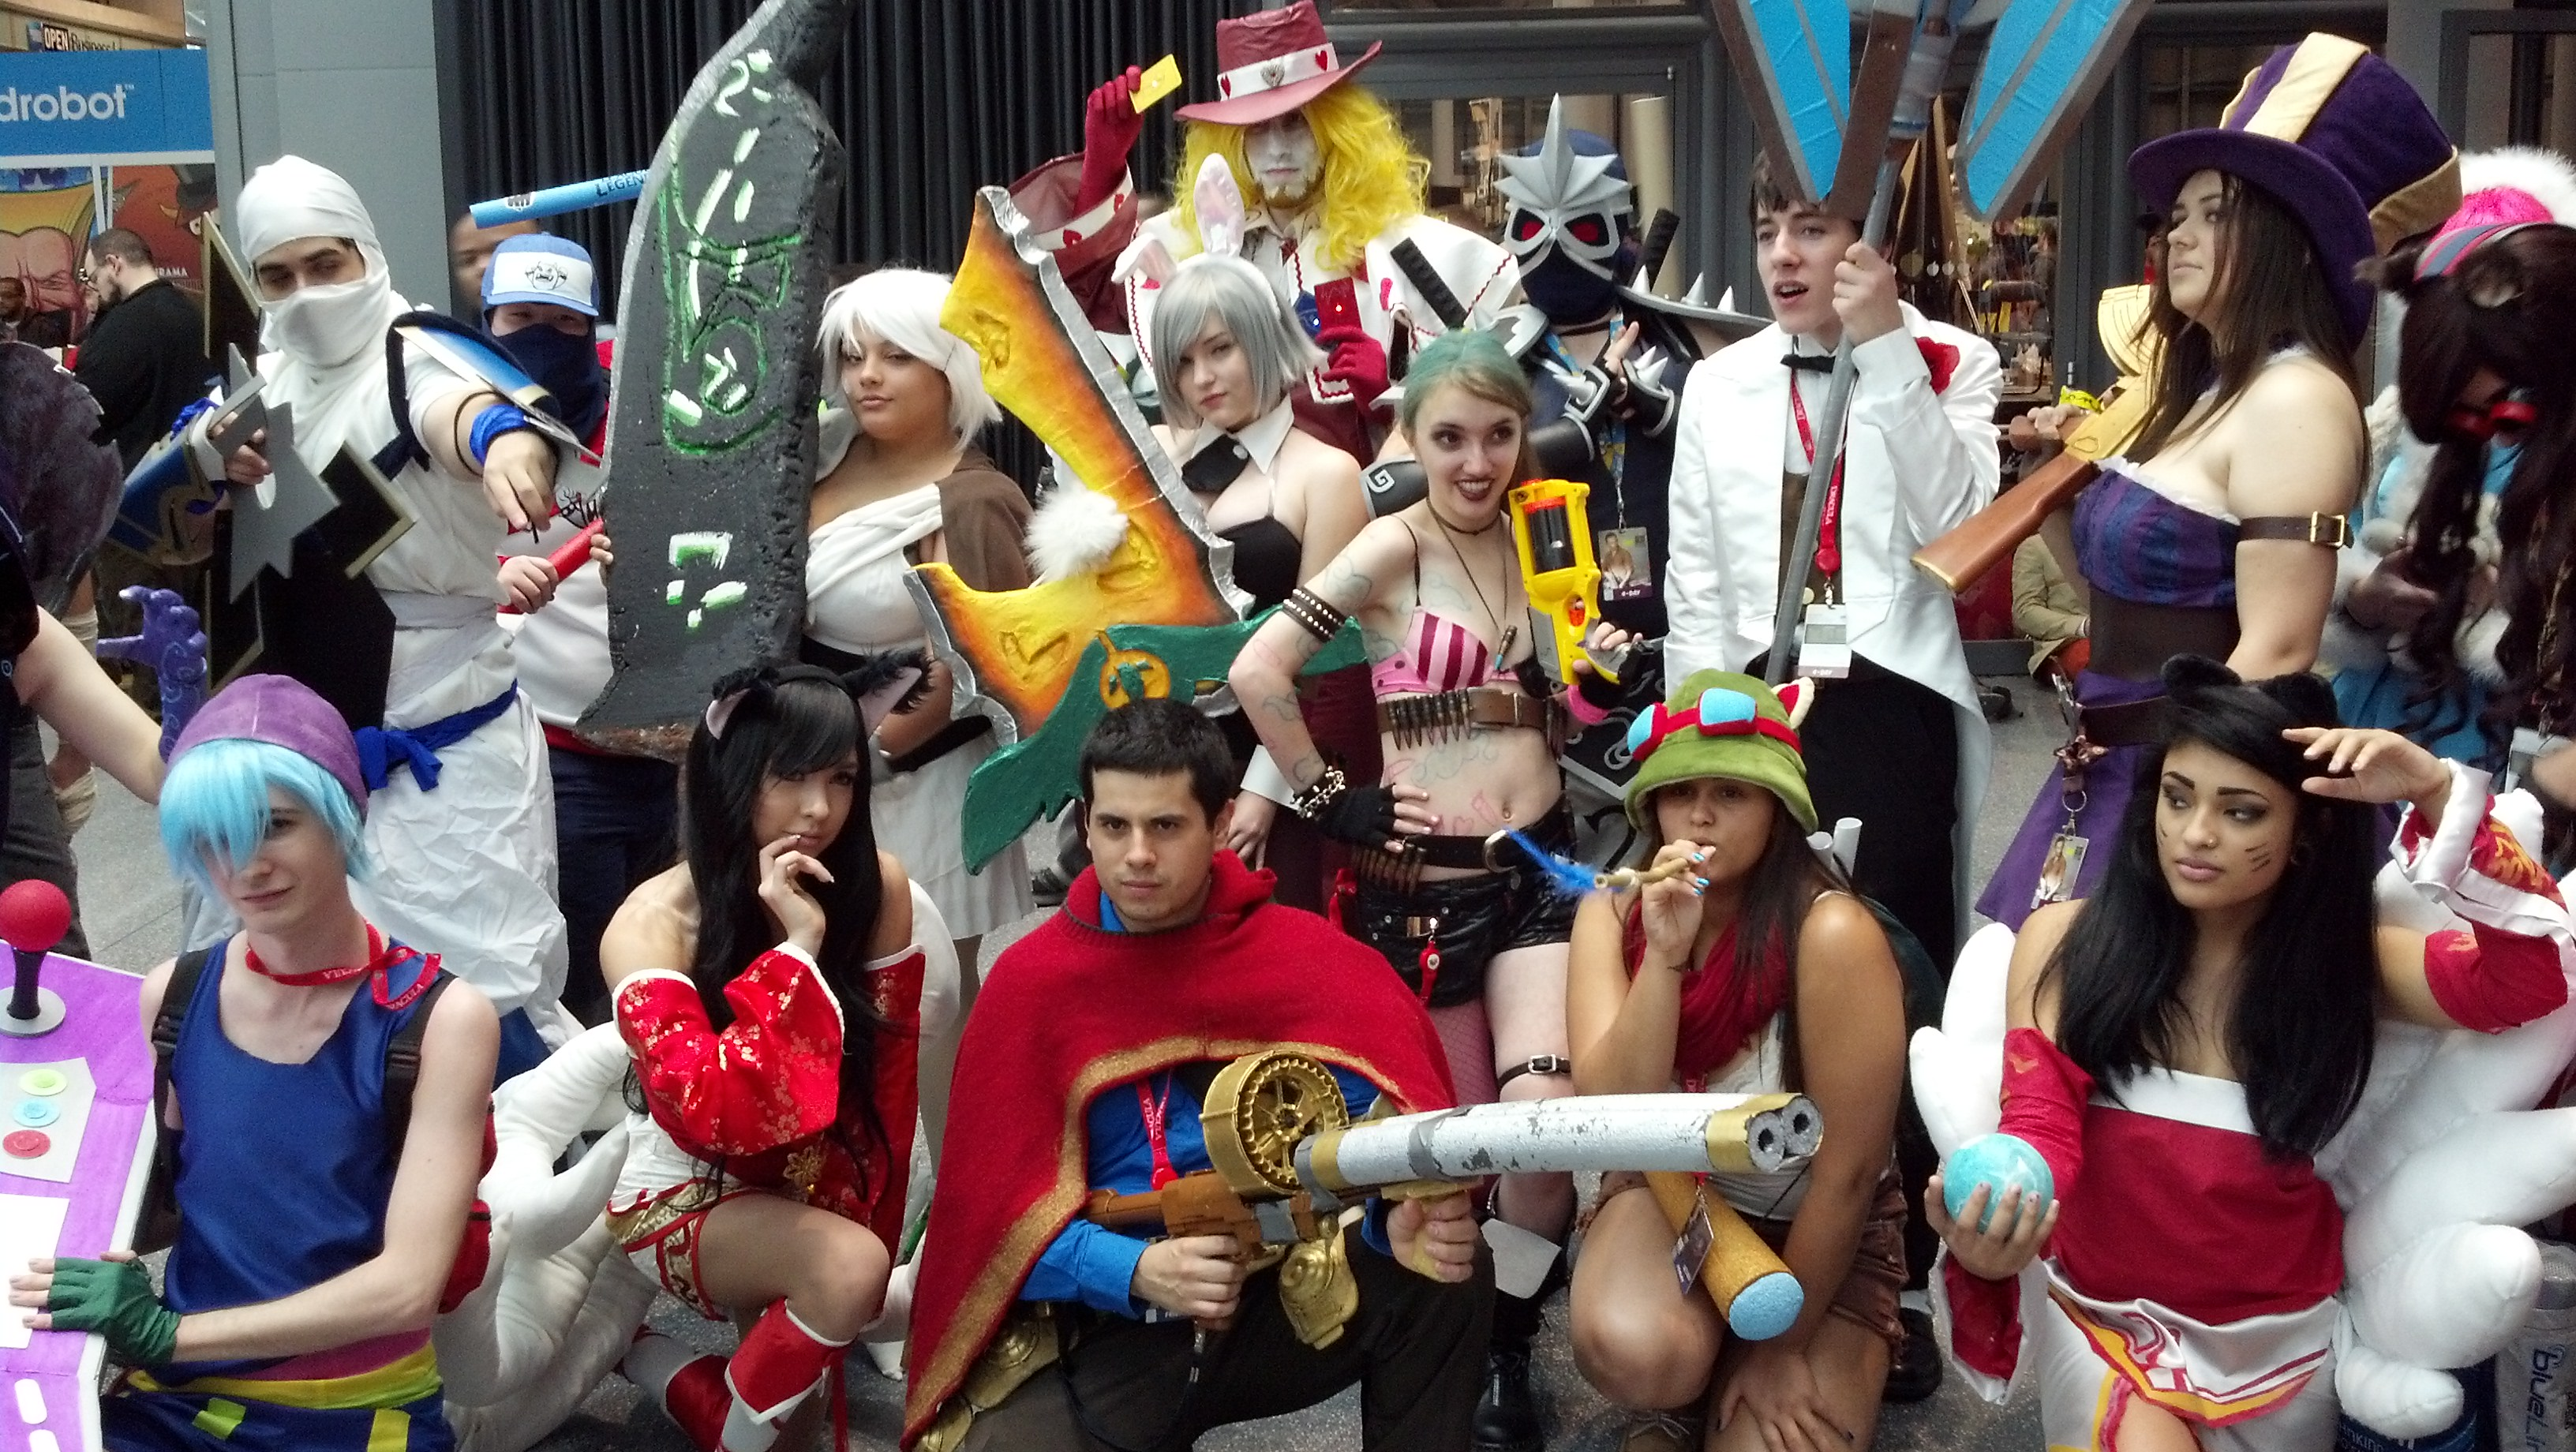 A large group of LoL cosplayers, all in one place.Shockblade Zed, TPA Shen, Riven, Battle Bunny Riven, Jack of Hearts Twisted Fate, Shen, Debonair Jayce, Caitlyn, Frostfire Annie, Ziggs, Crossplayed Arcade Sona, Ahri, Graves, Jinx, Teemo, Ahri